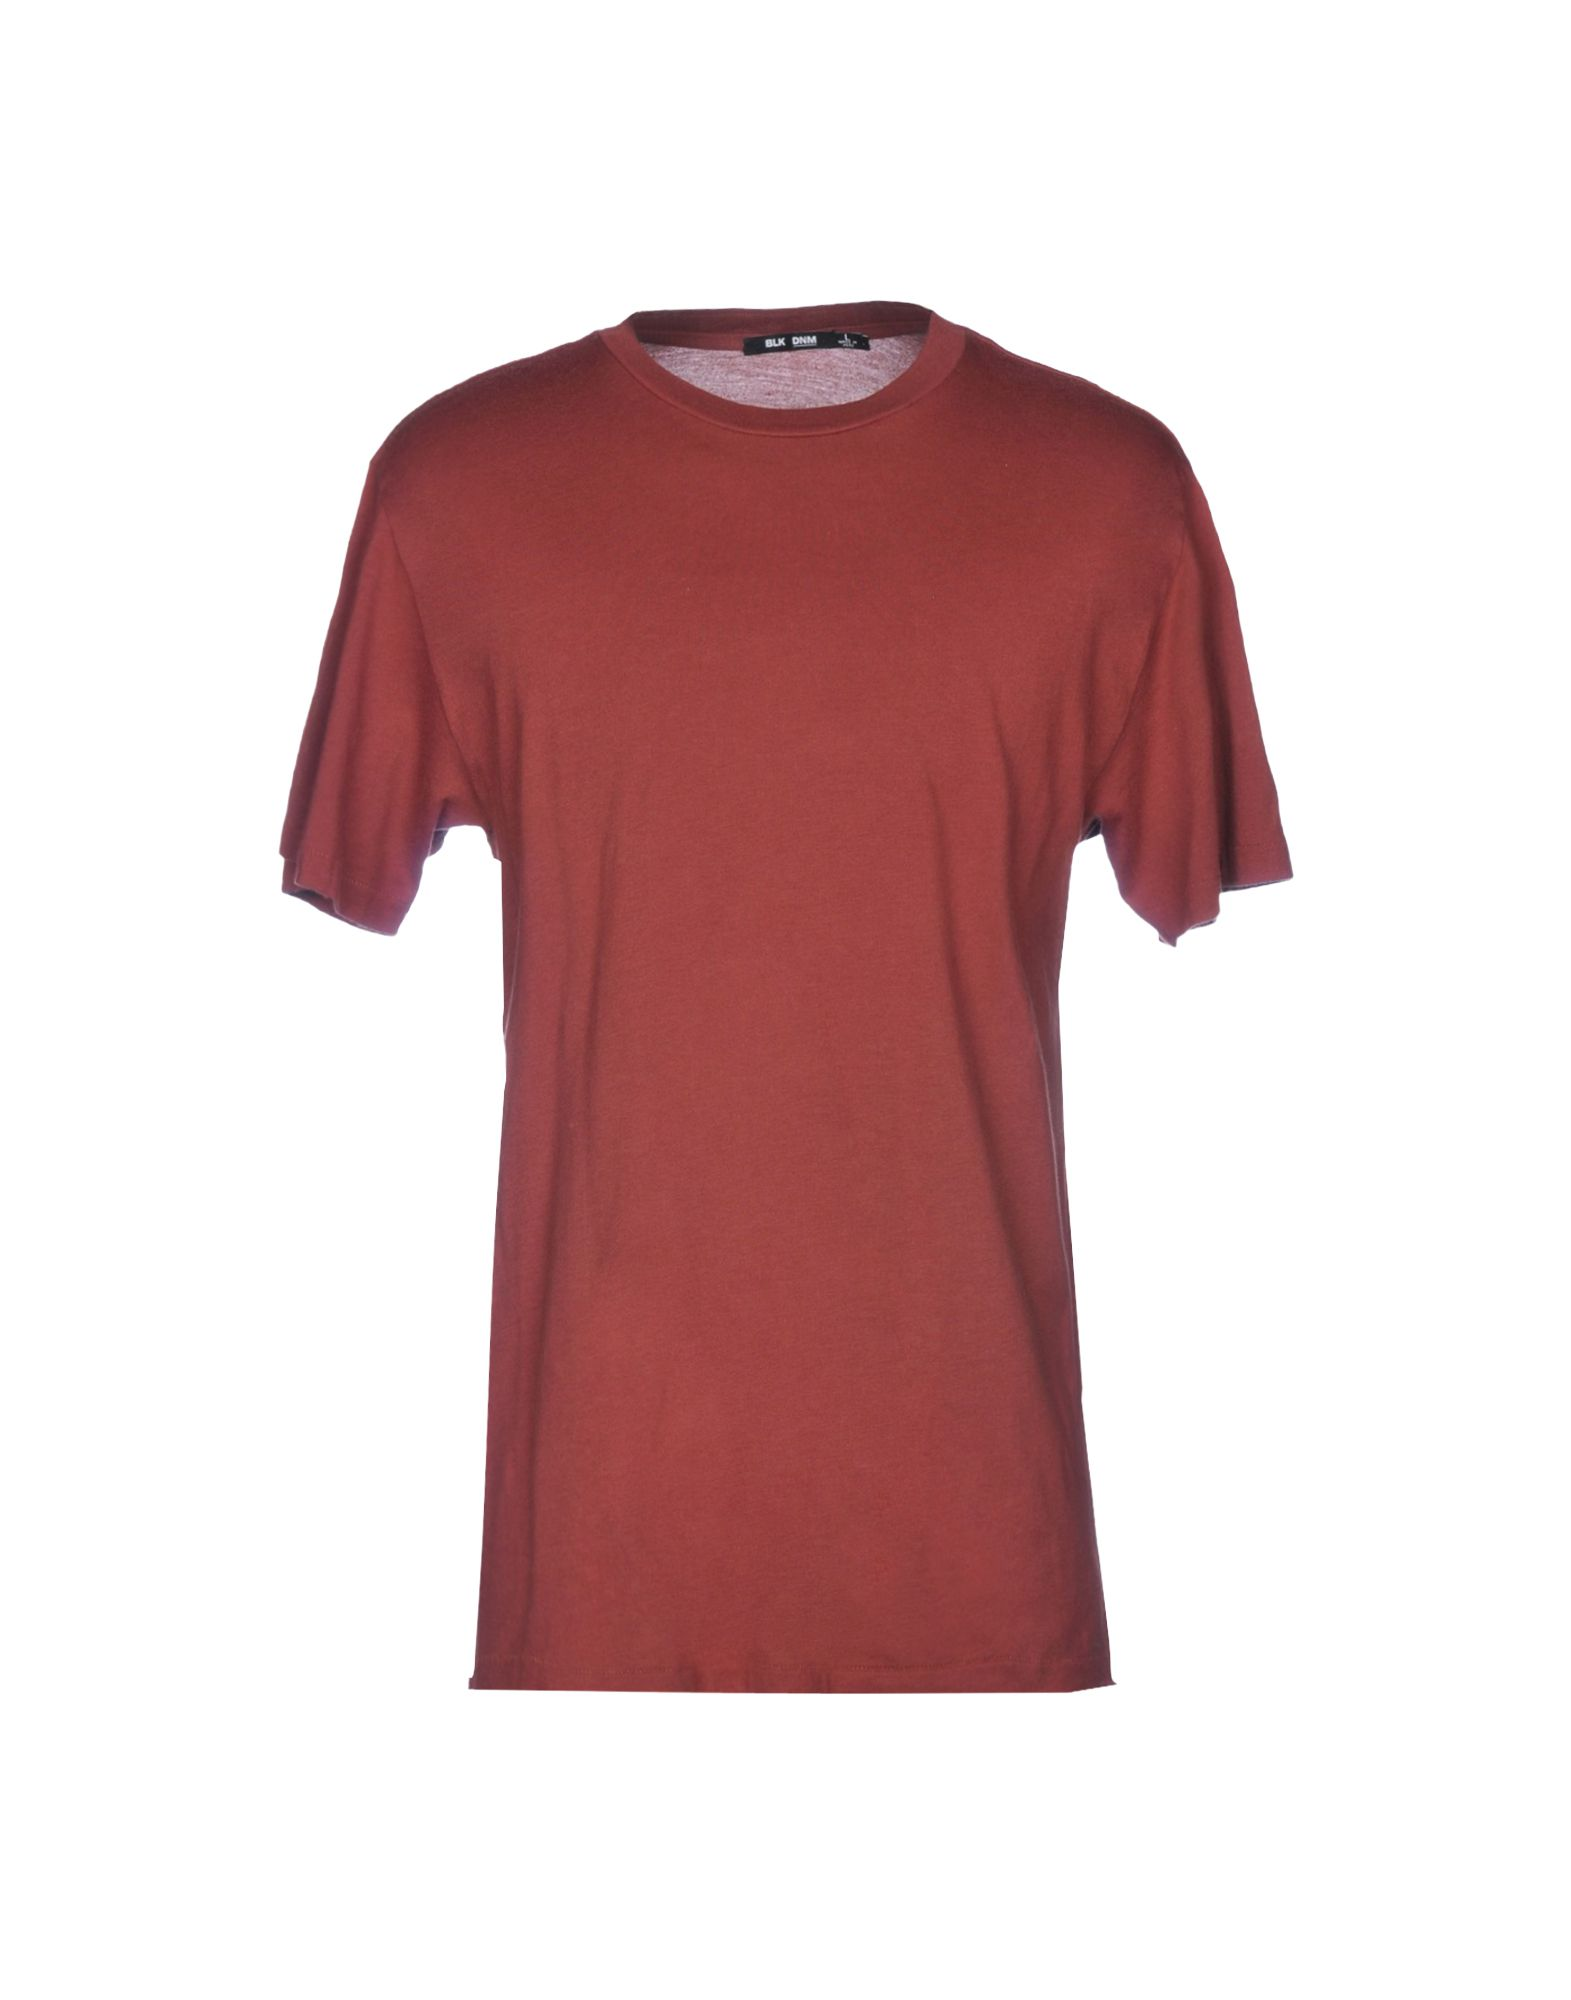 BLK DNM T-Shirt in Brick Red